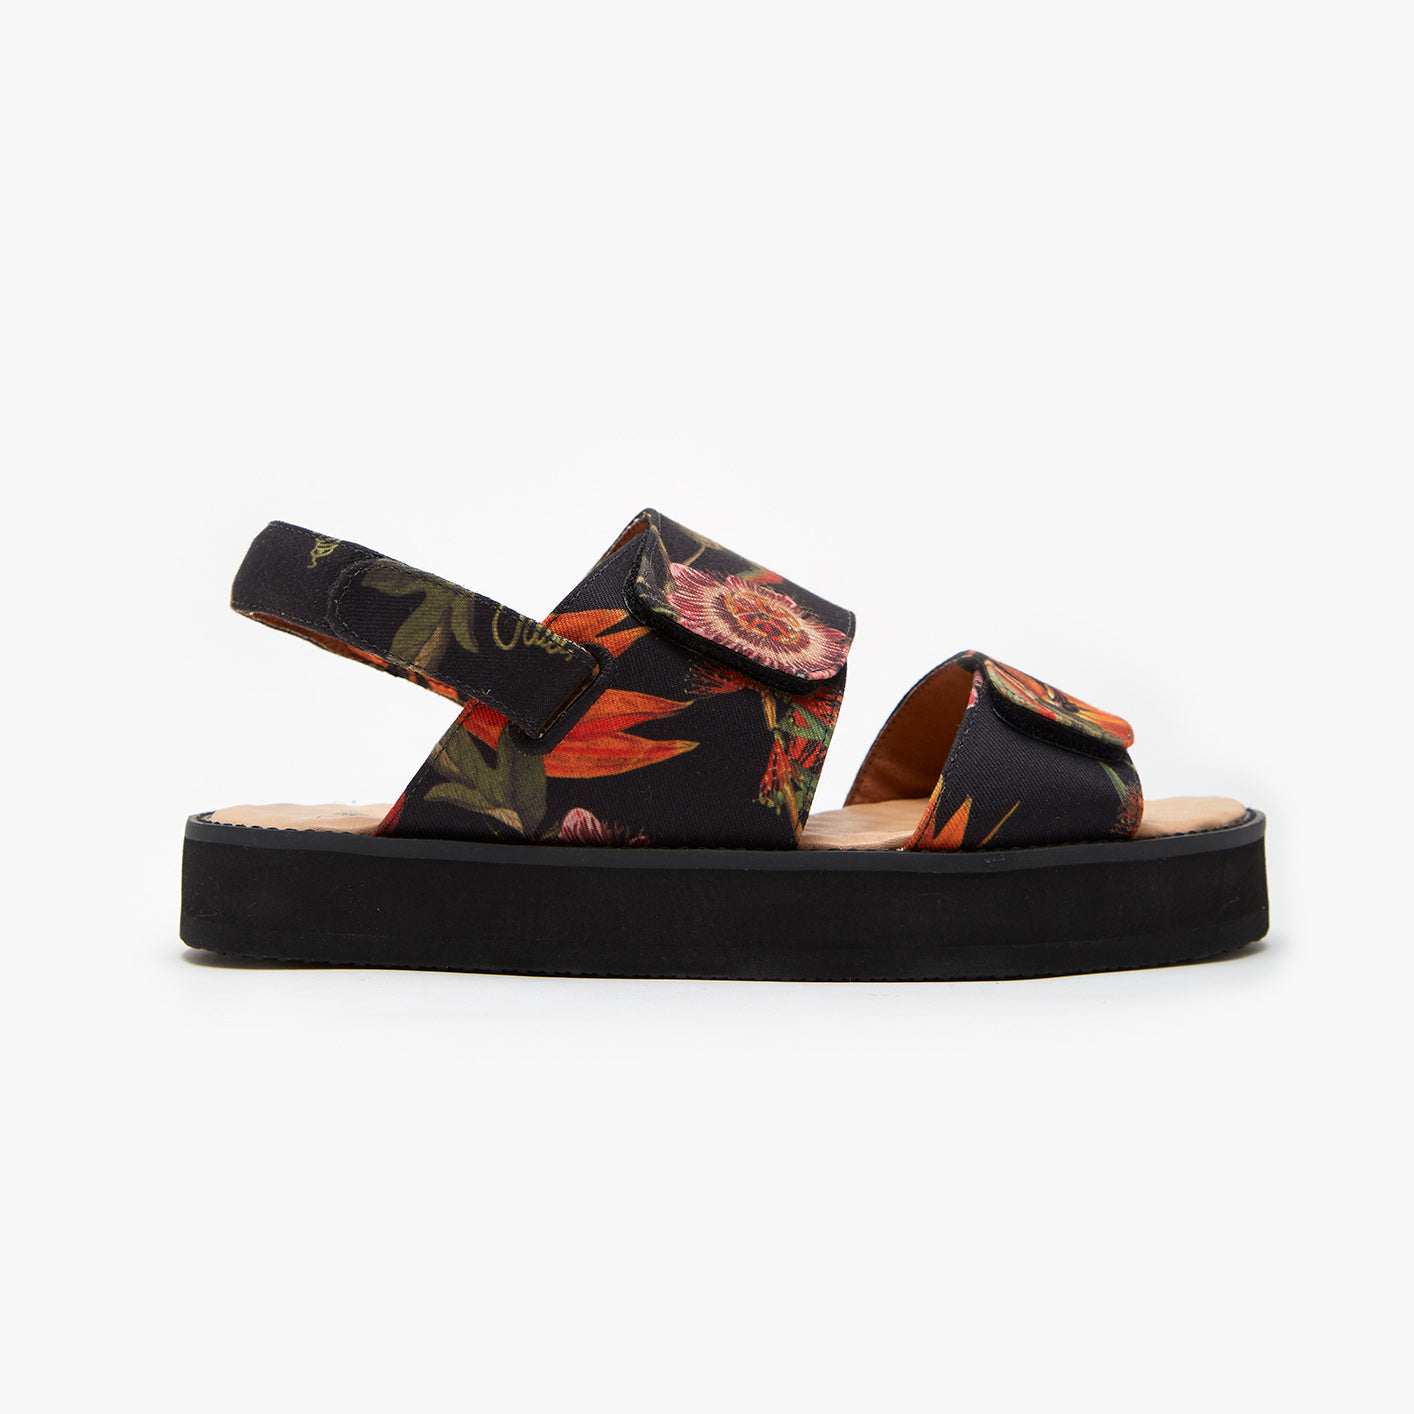 TROPICALIS STRAP SANDAL - Insecta Shoes